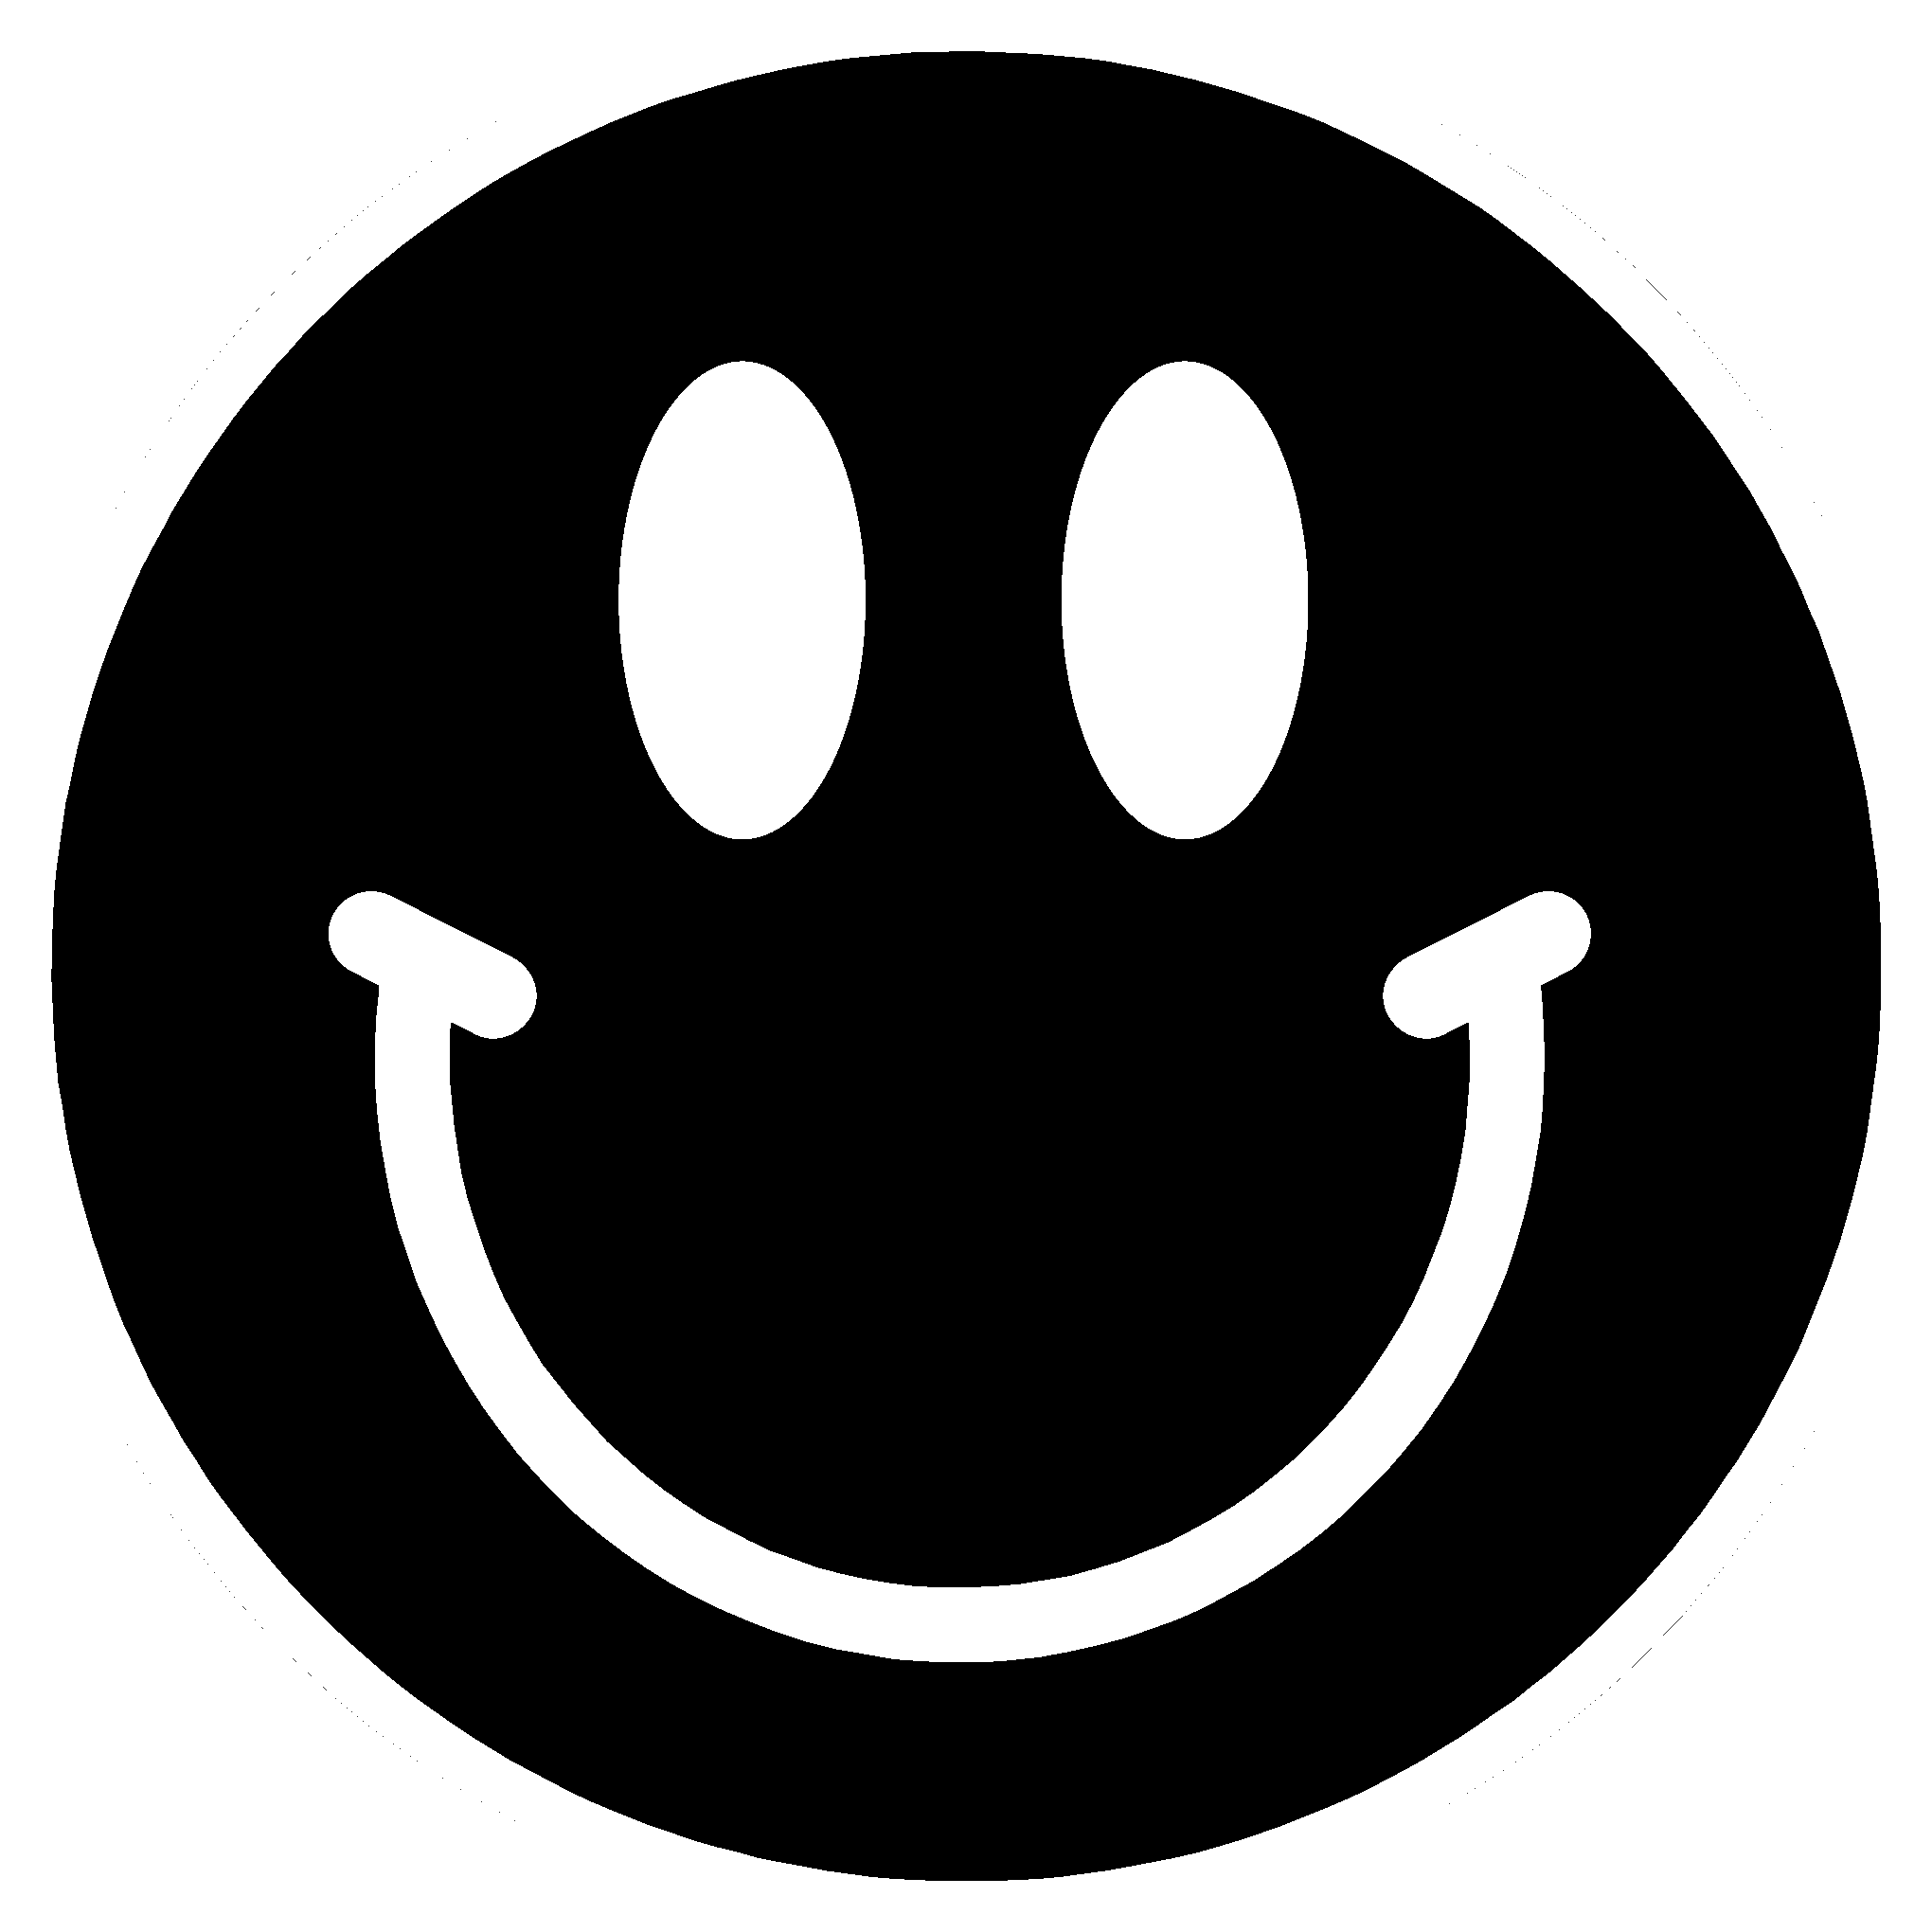 Smiley Face Black Backgrounds